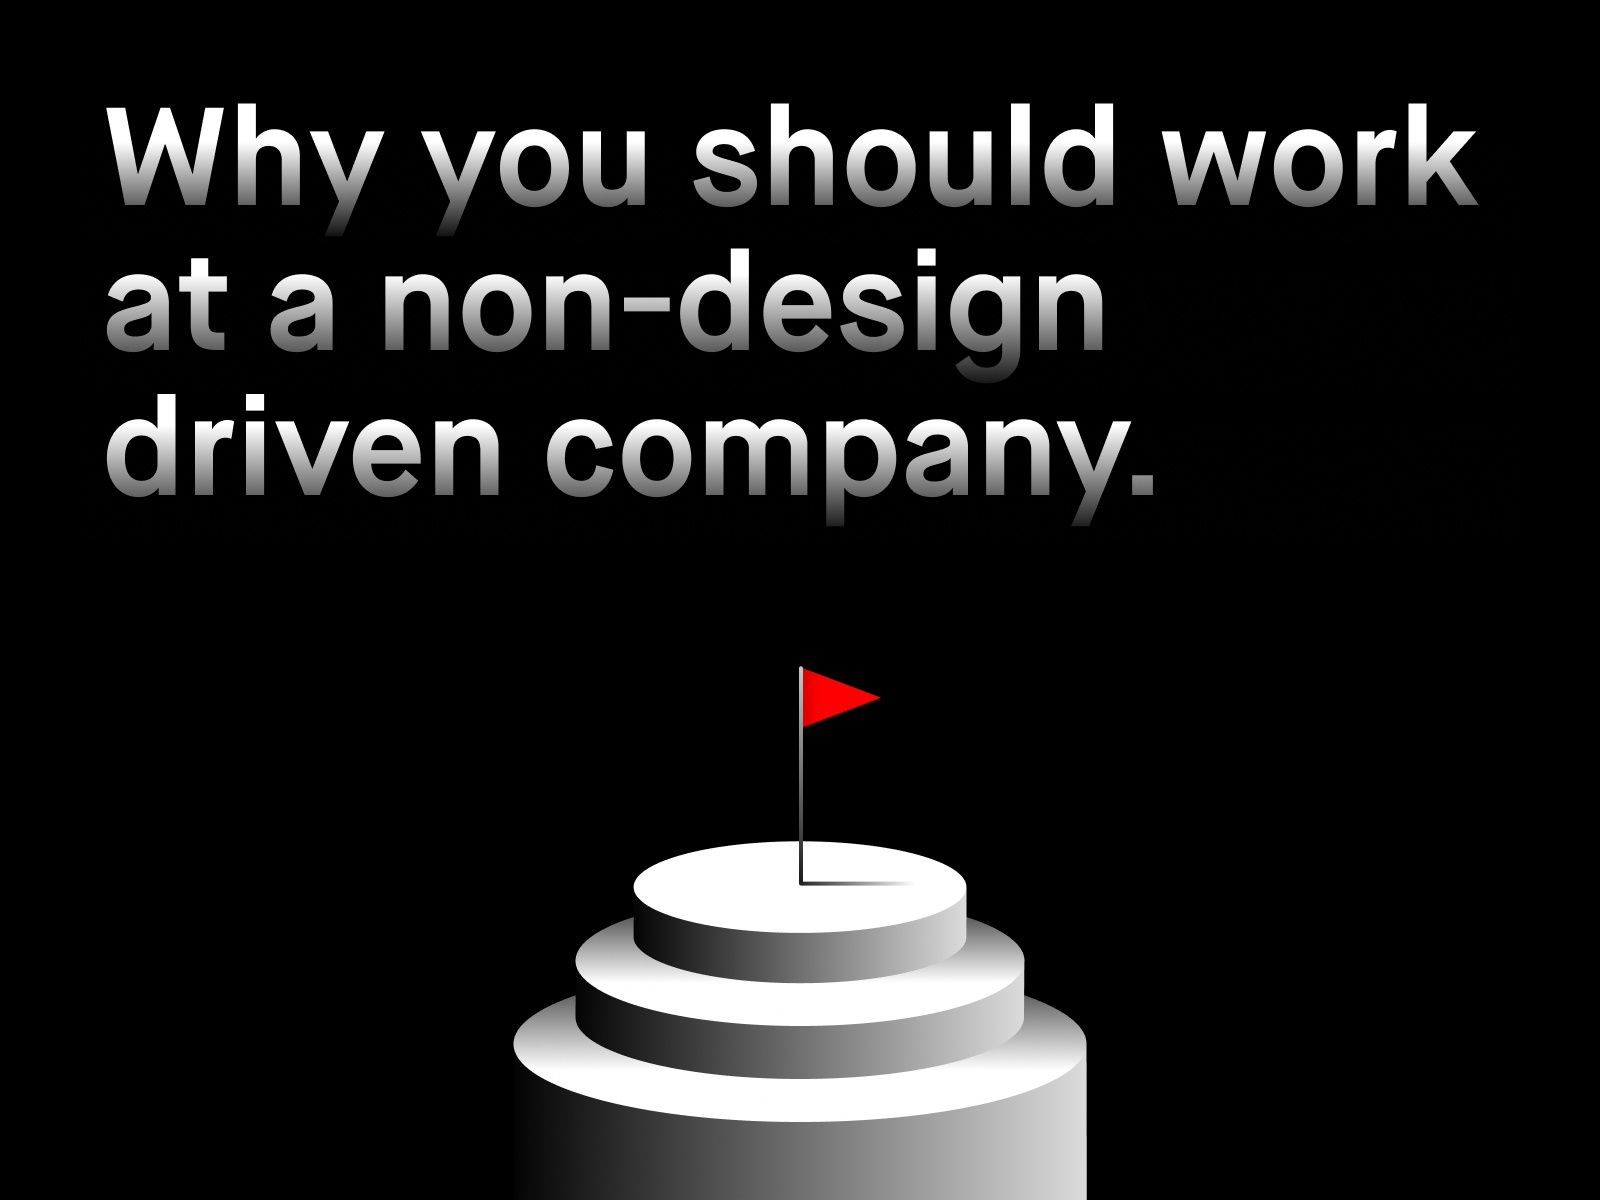 Why you should work for a non-design driven company.